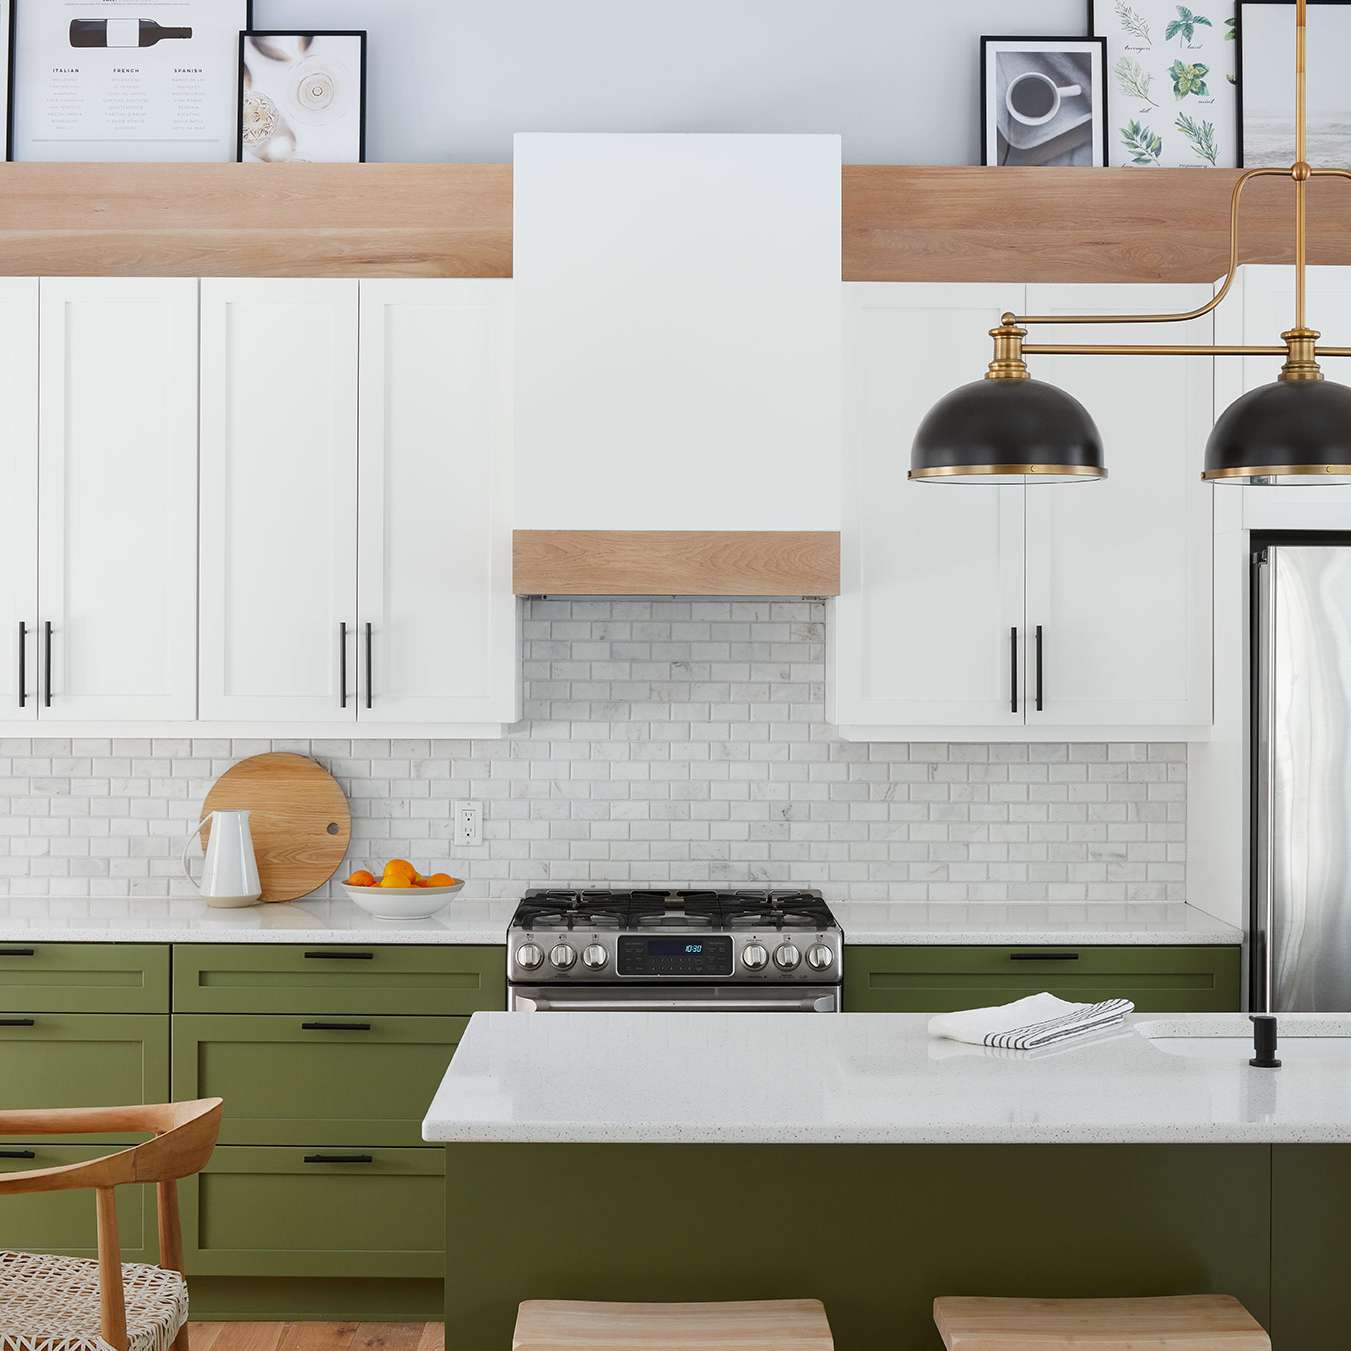 21 Beautiful Modern Kitchen Ideas To Spruce Up Your Space Flipboard